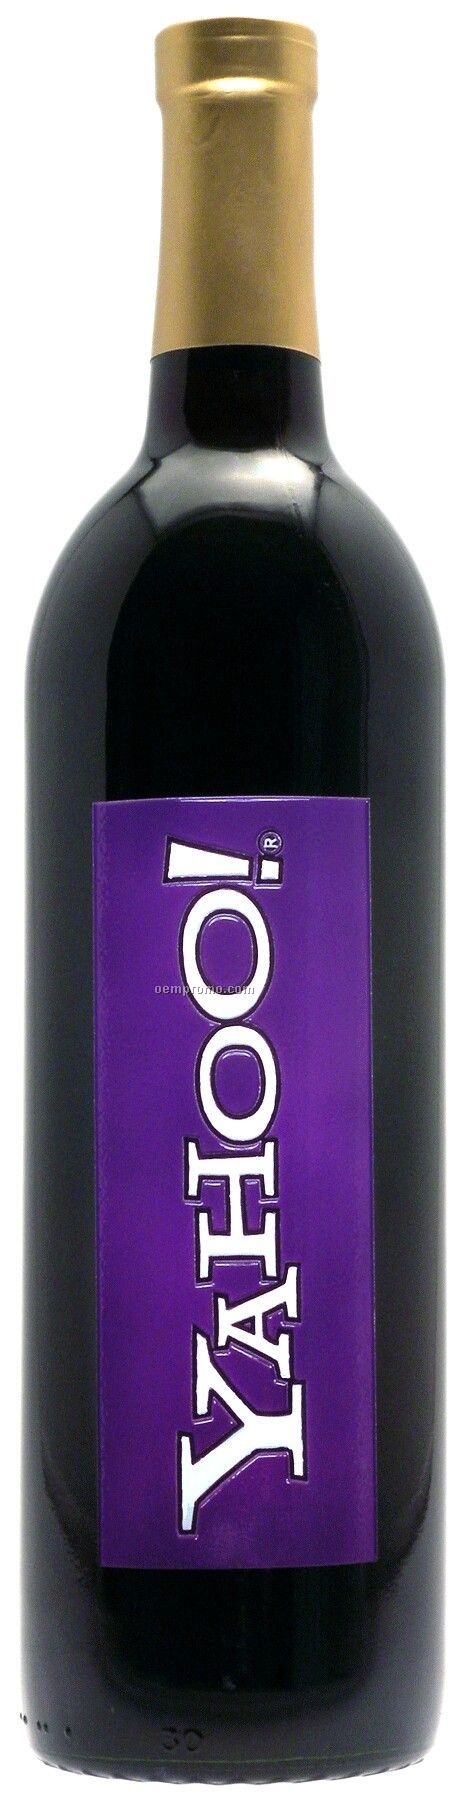 750ml Standard Merlot Wine Etched With 2 Color Fill